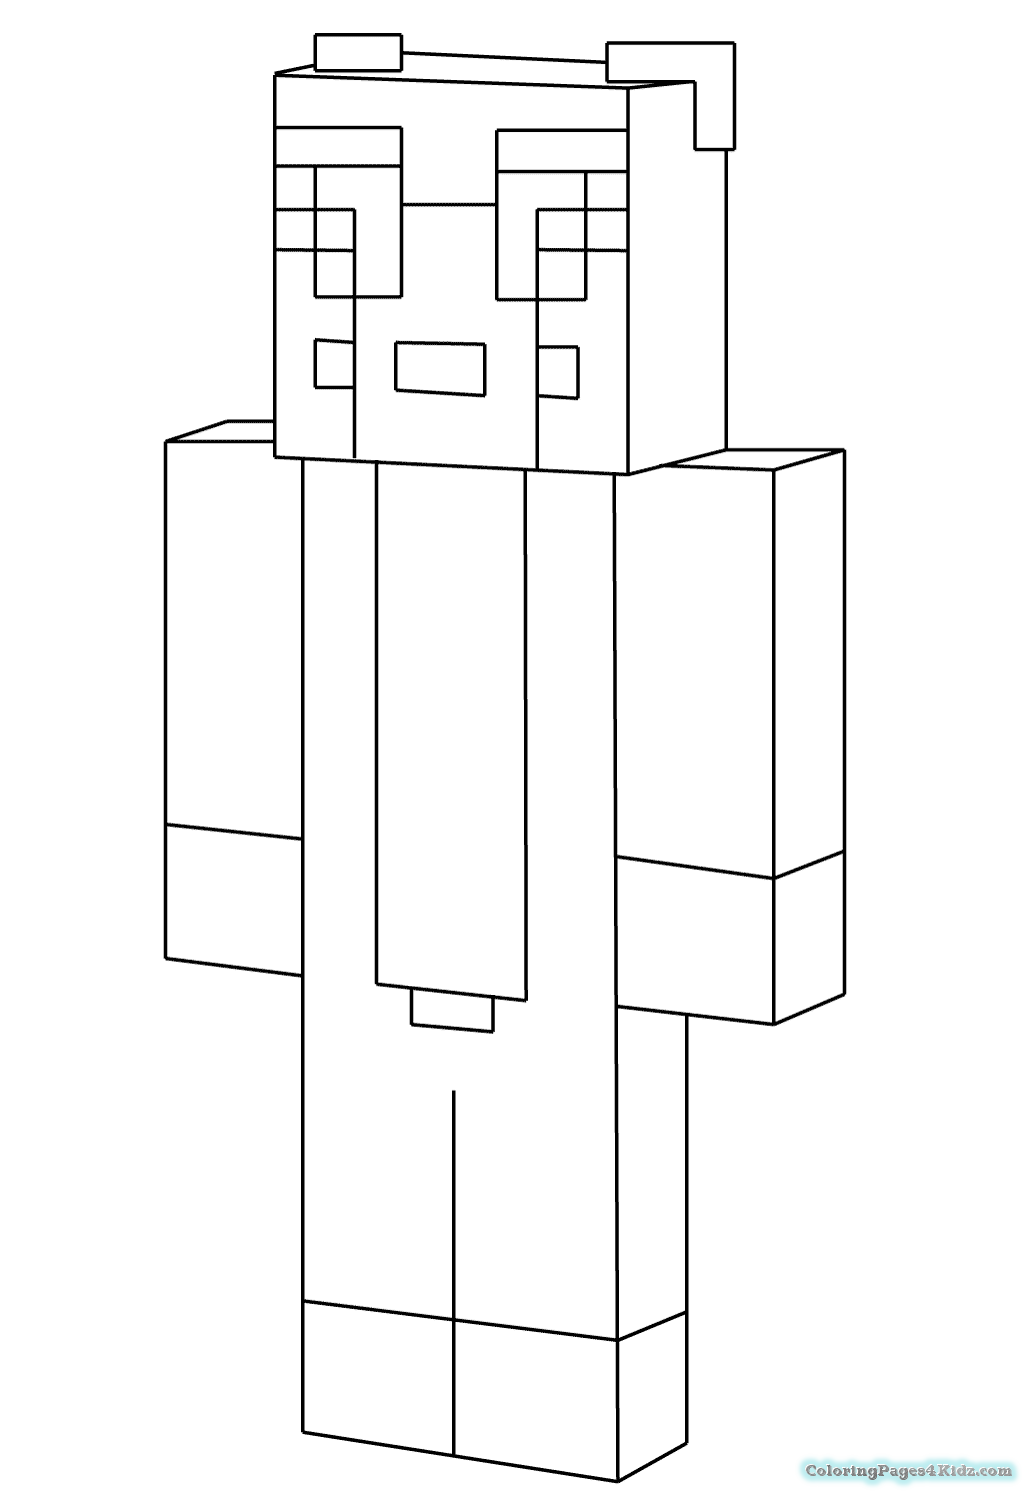 Minecraftcoloringpagesfree15 Coloring Pages For Kids Minecraft Coloring Pages Cat Coloring Page Minecraft Stampy